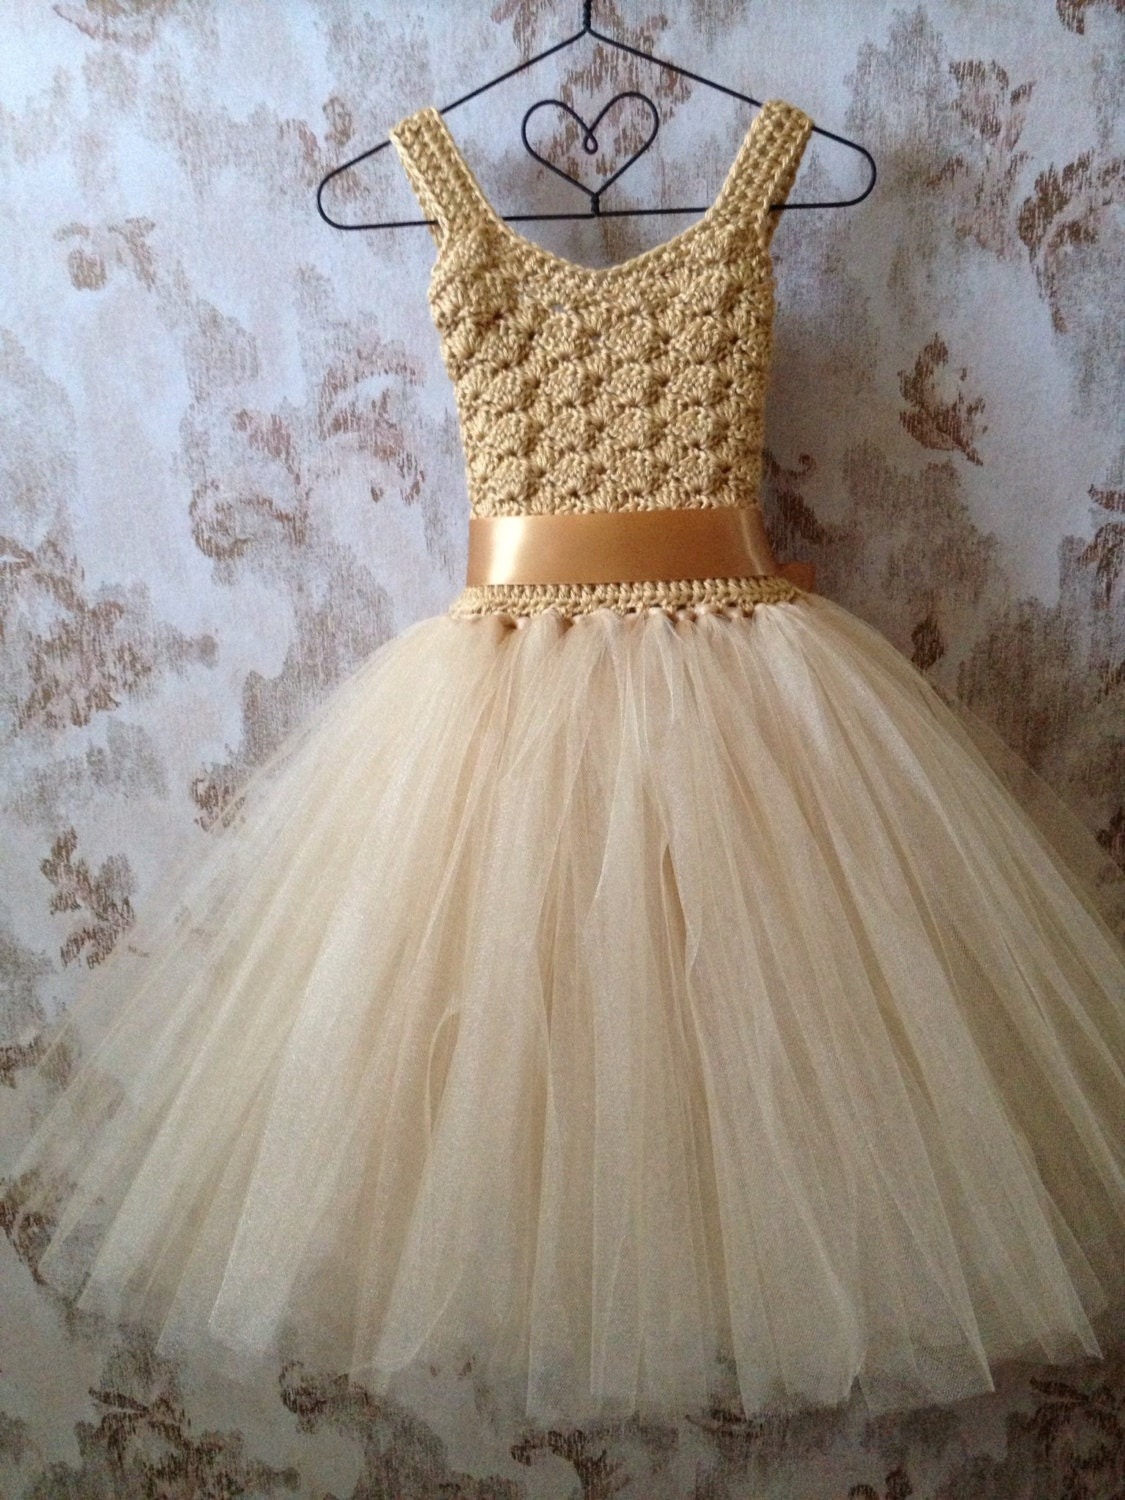 Gold flower girl tutu dress ankle length tutu dress Boho by Qt2t